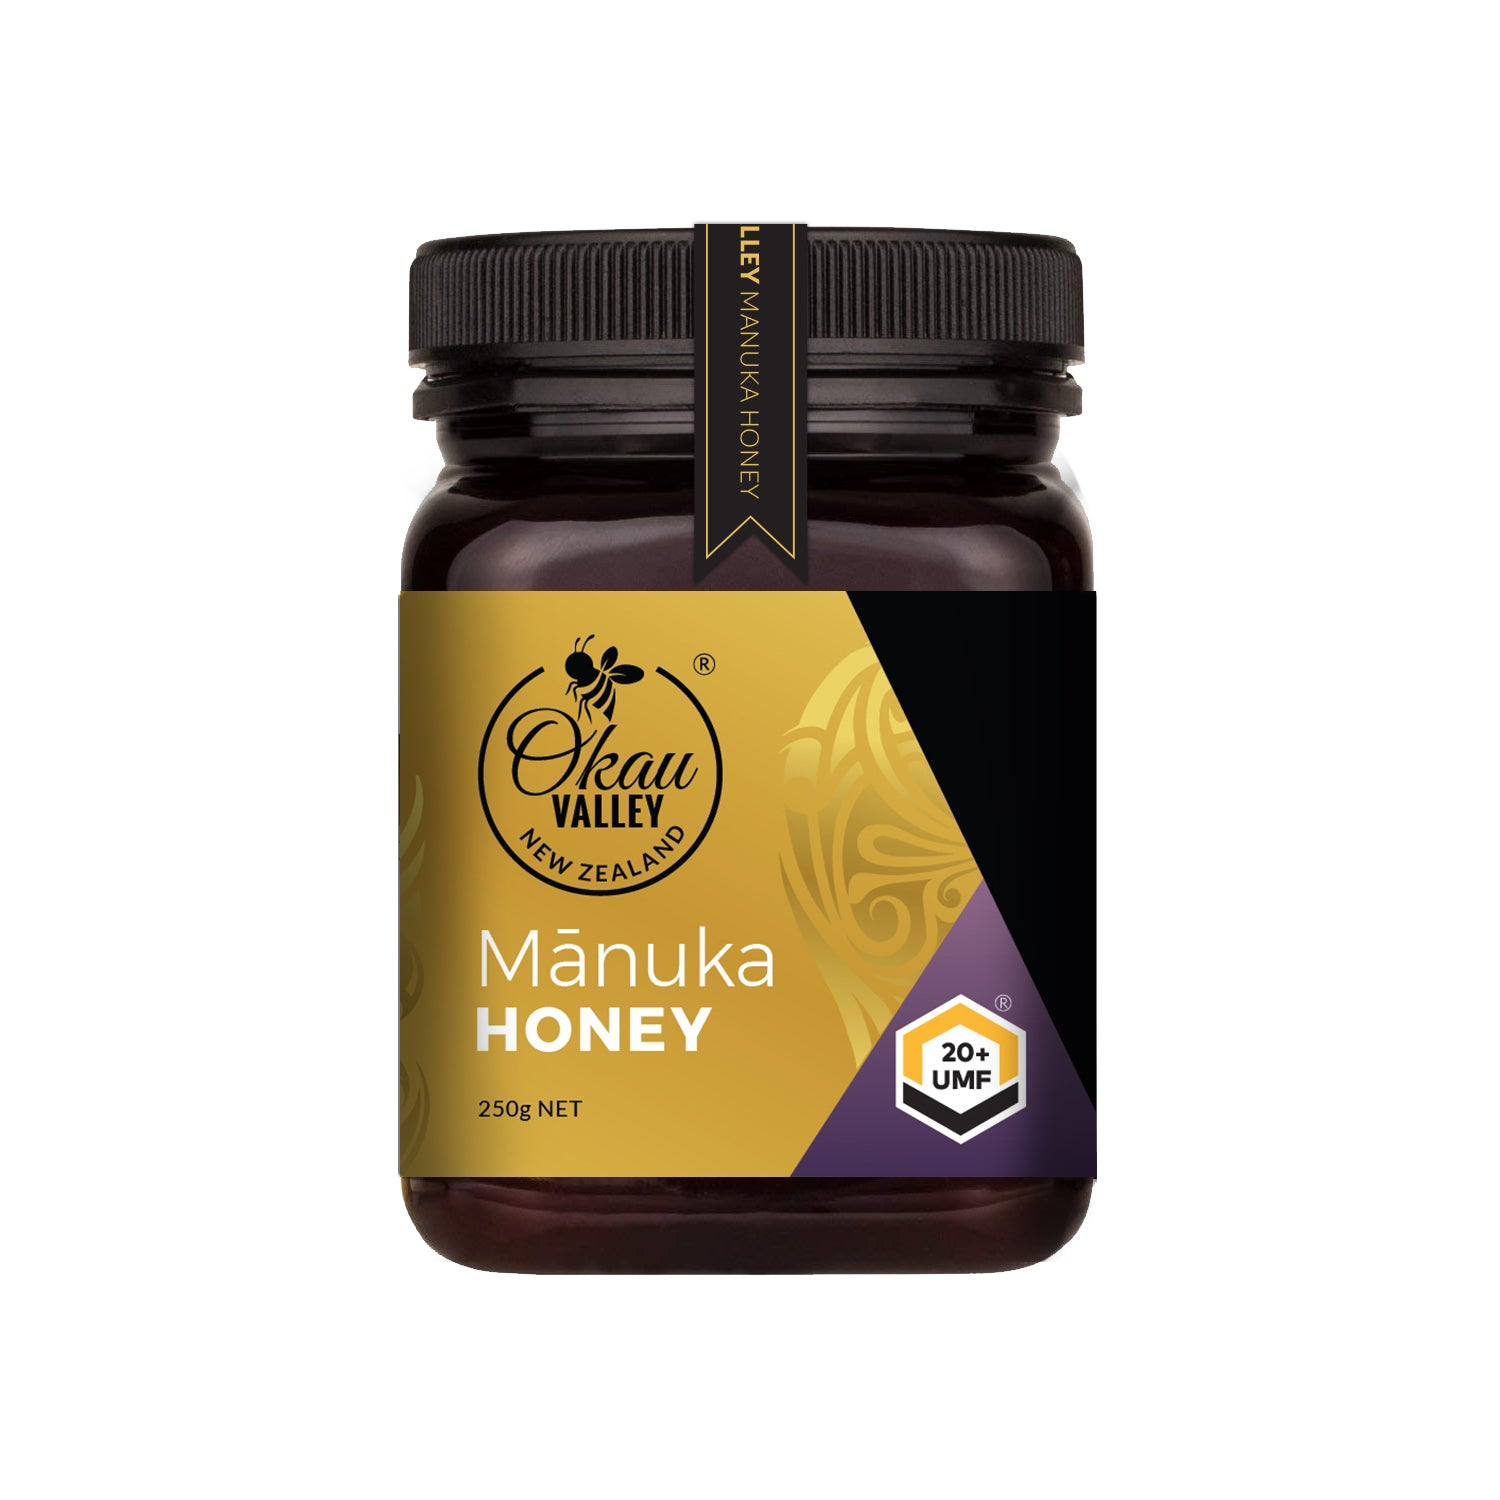 Okau Valley UMF 20+ Mānuka Honey